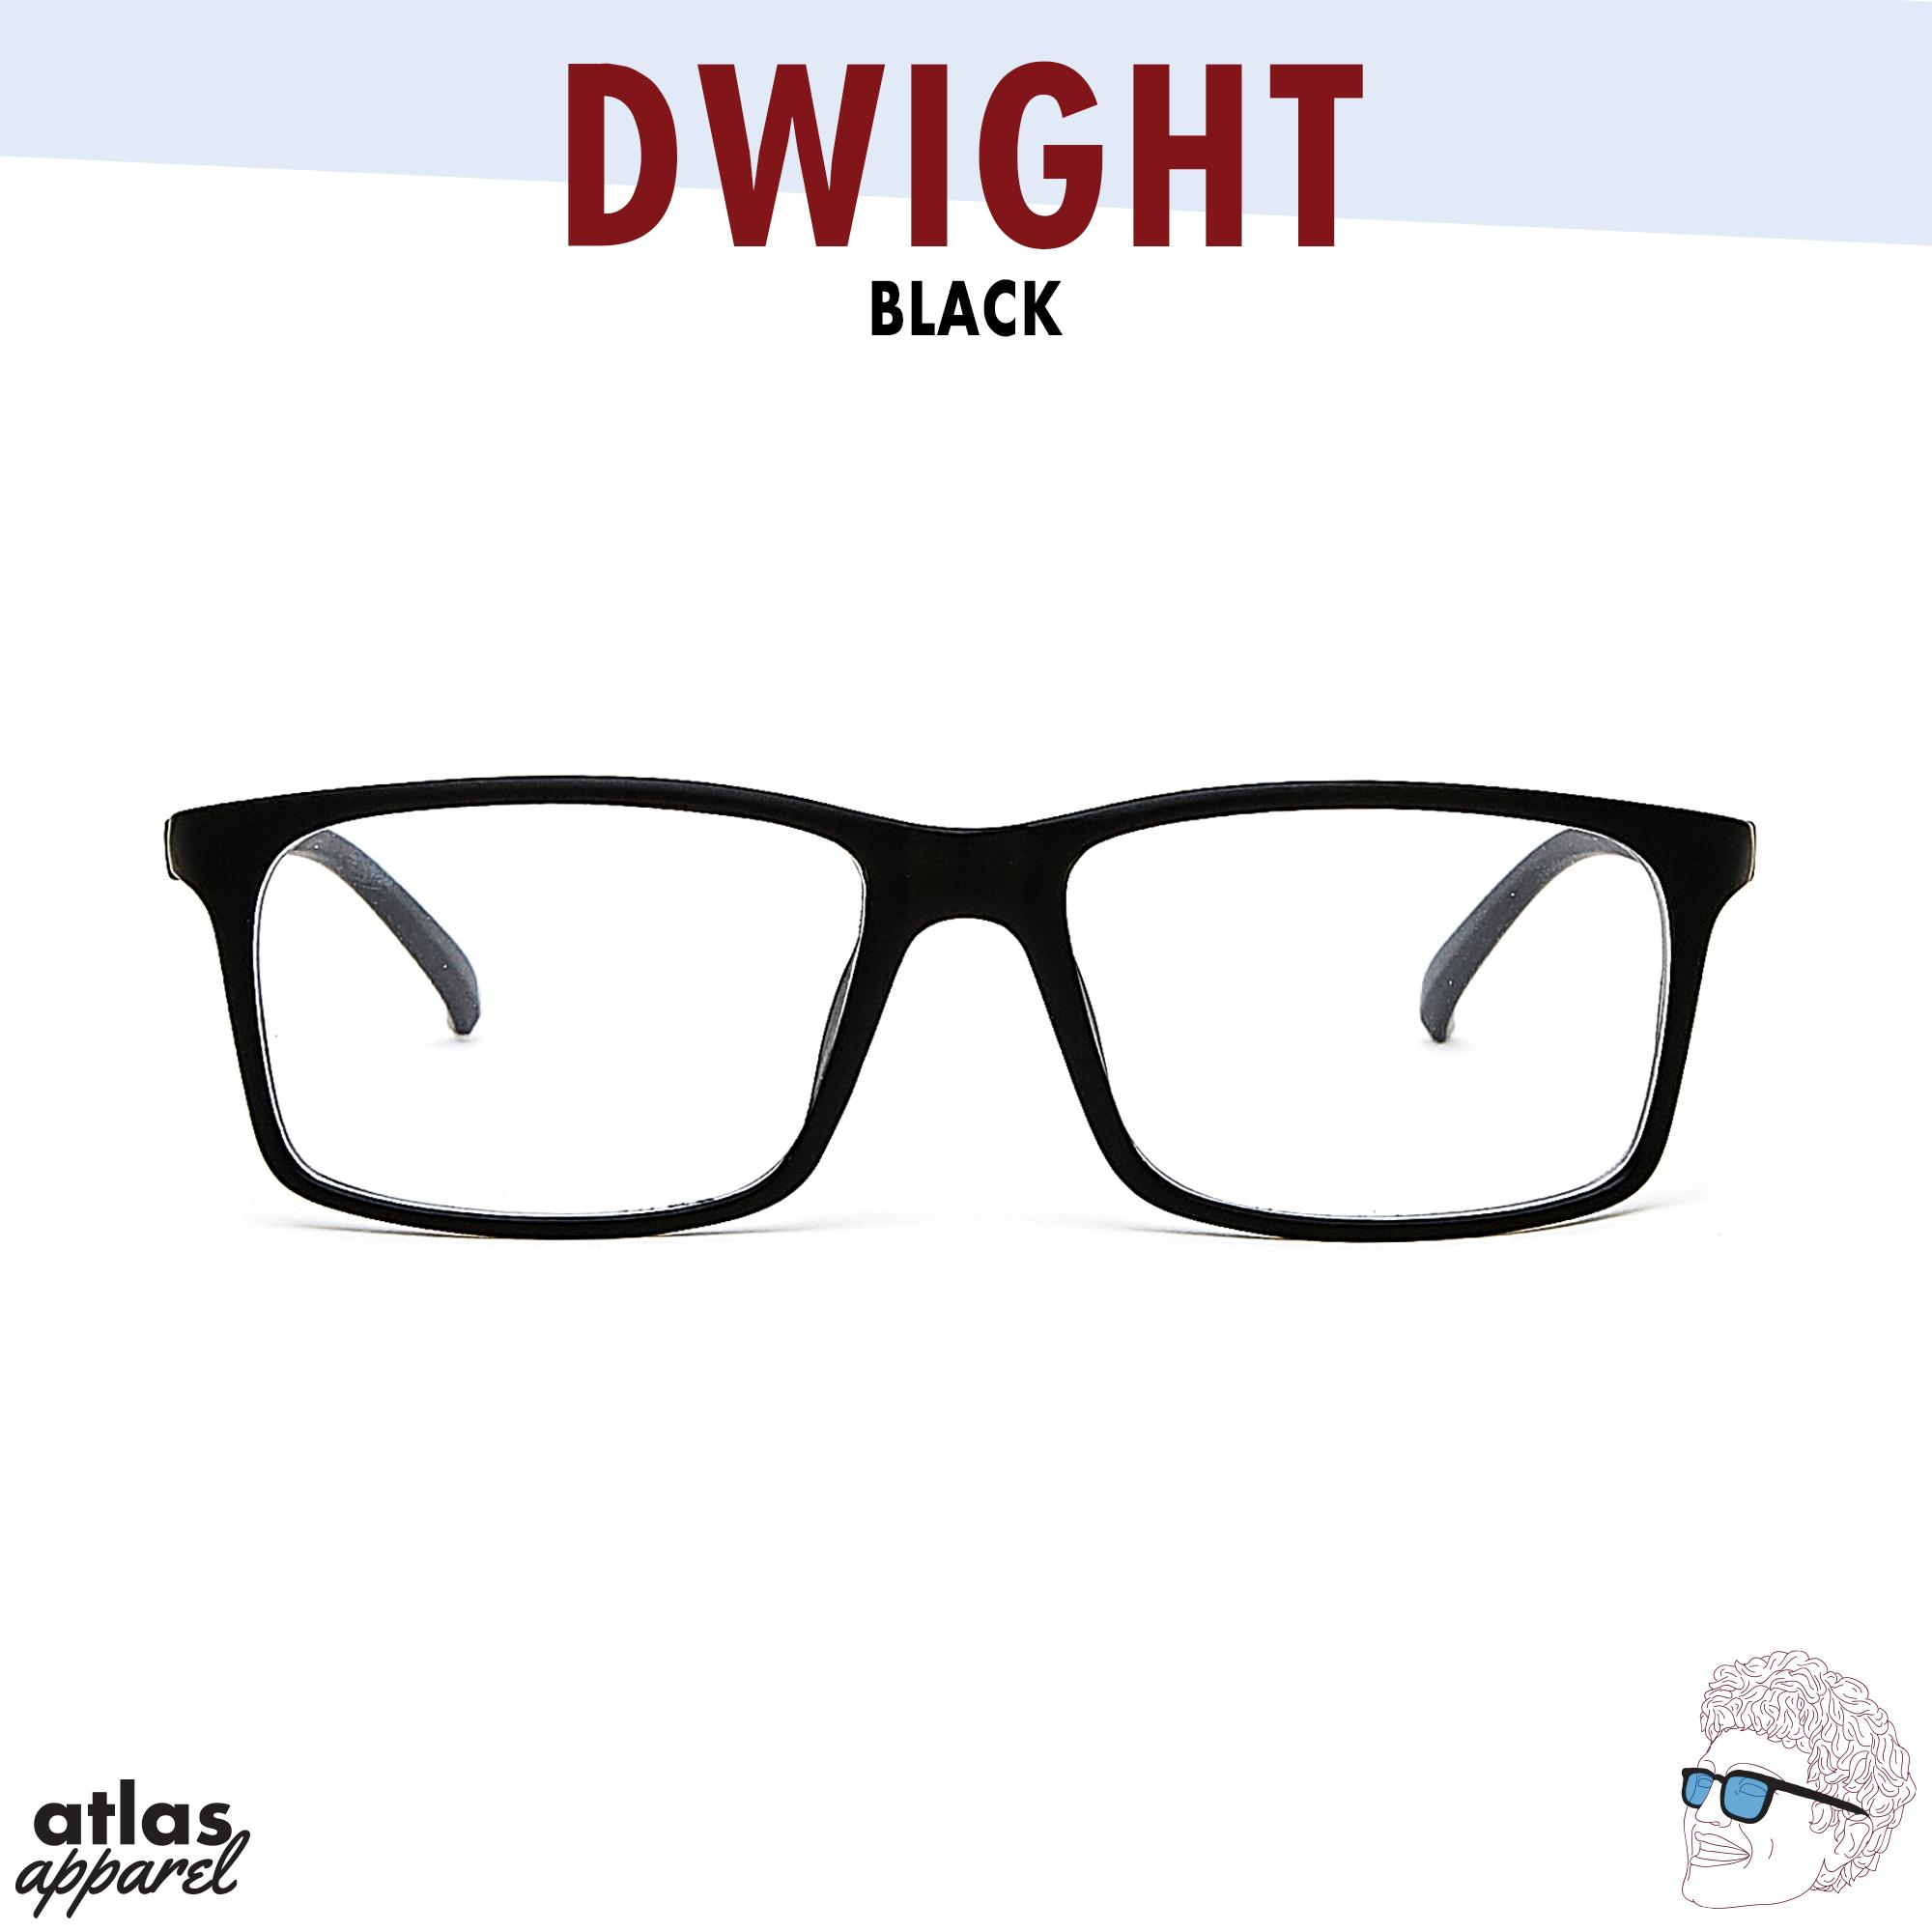 a26d1dc663 Dwight (Black) Size 52 Spring Hinge Rectangle Eyeglasses for Men and Women  by Atlas